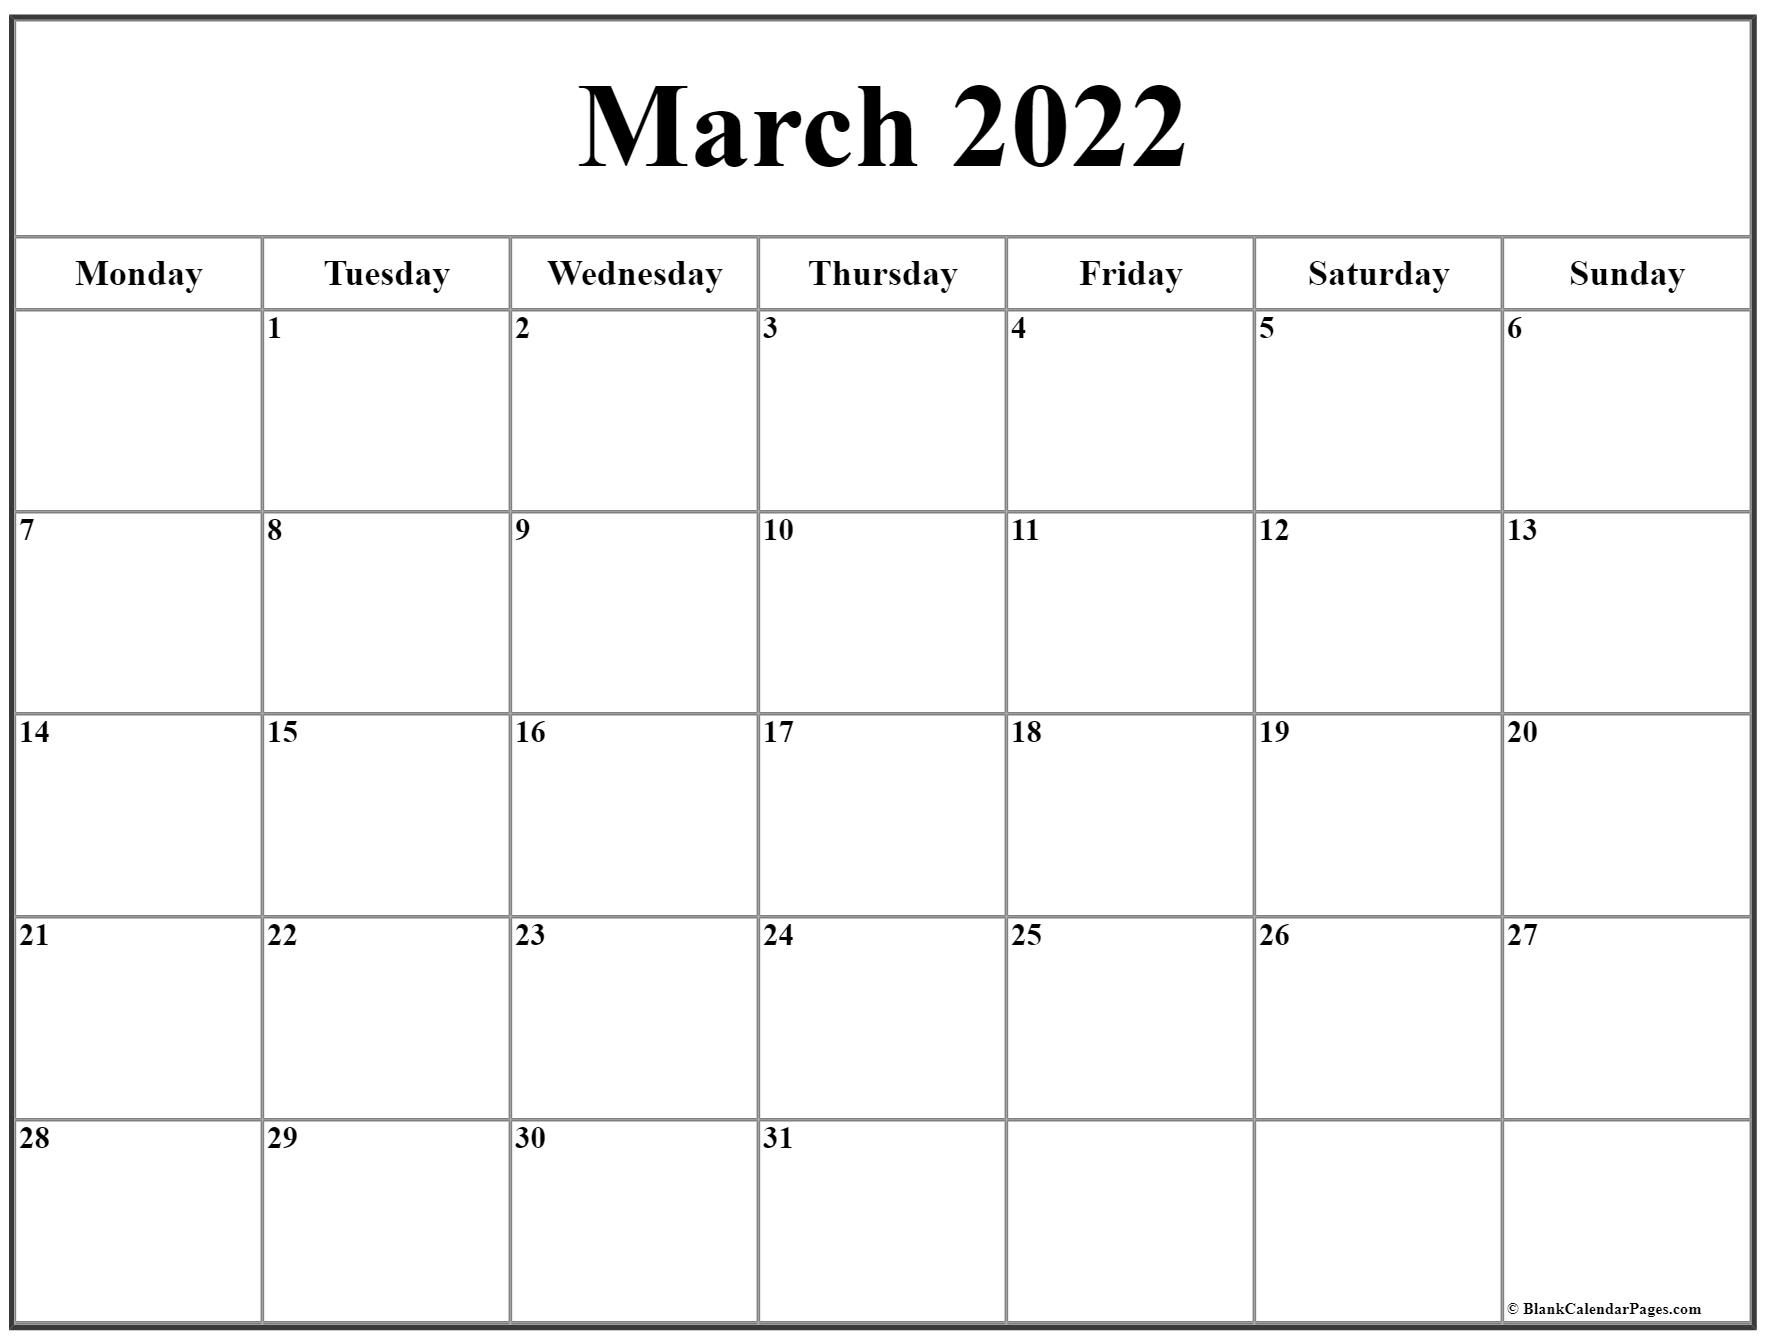 March 2022 Monday Calendar | Monday To Sunday in March And April 2022 Calendar Pages